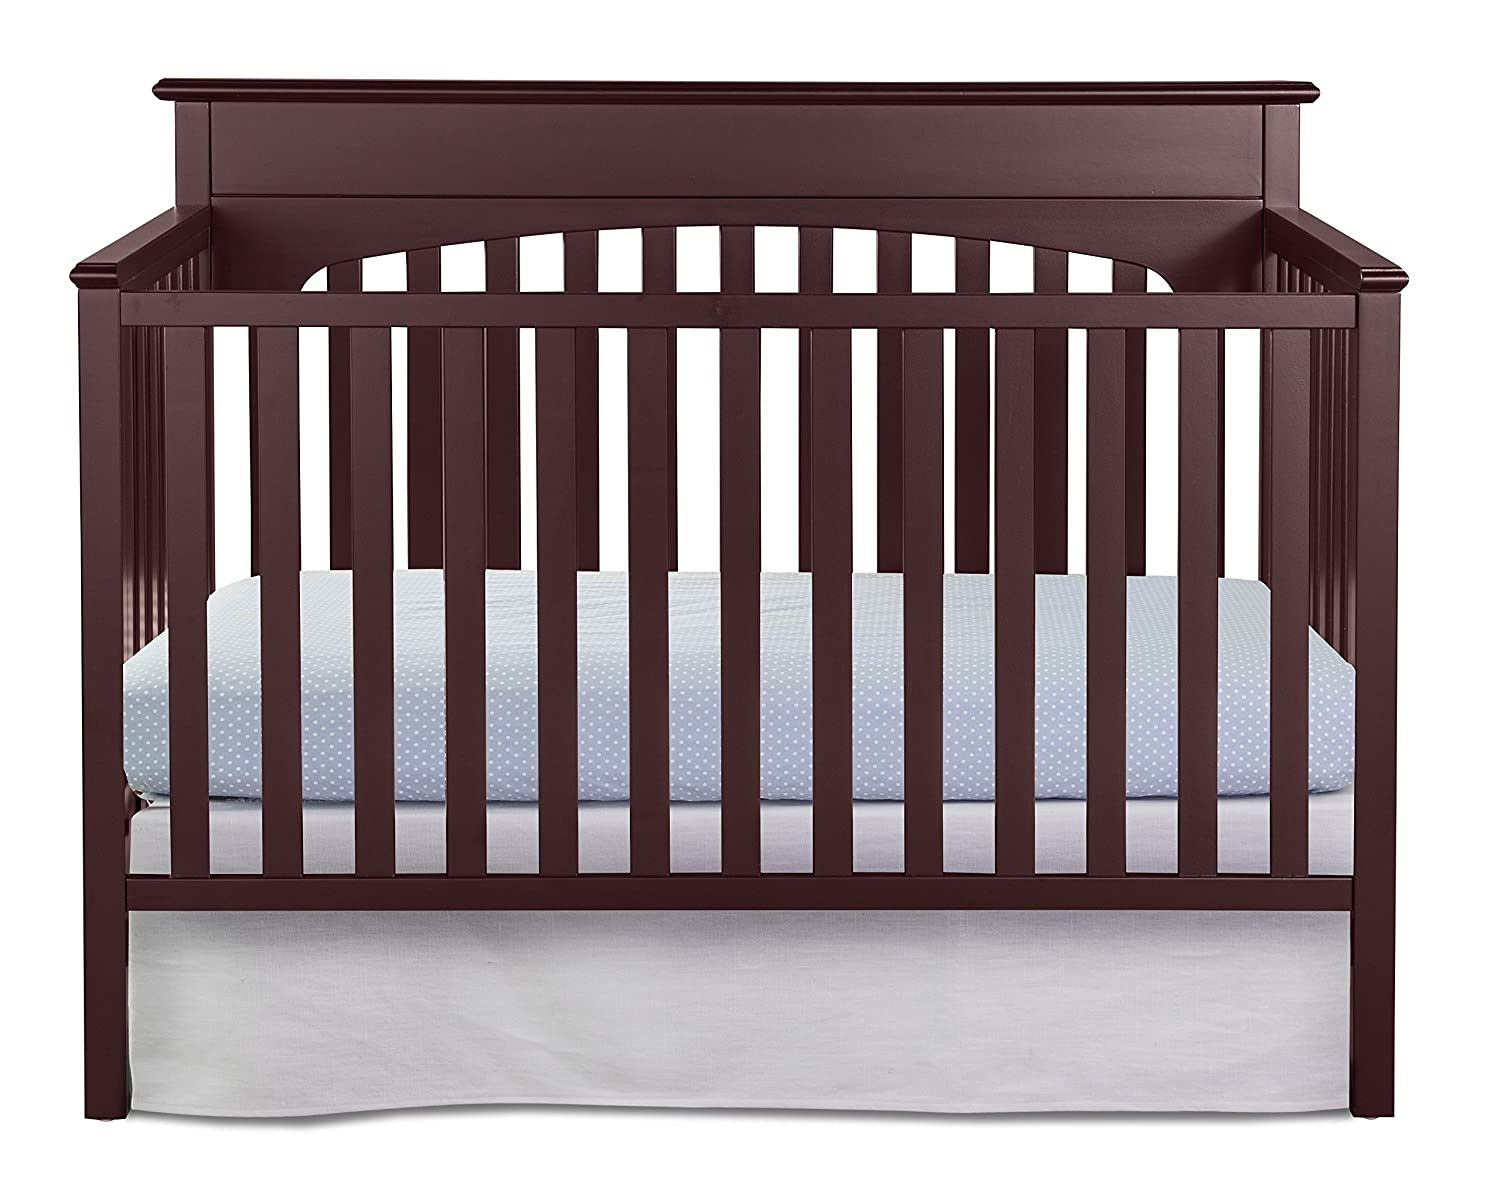 sectional ana cushions couch white into beds plans mattress free turn kids with crib that cribs diy